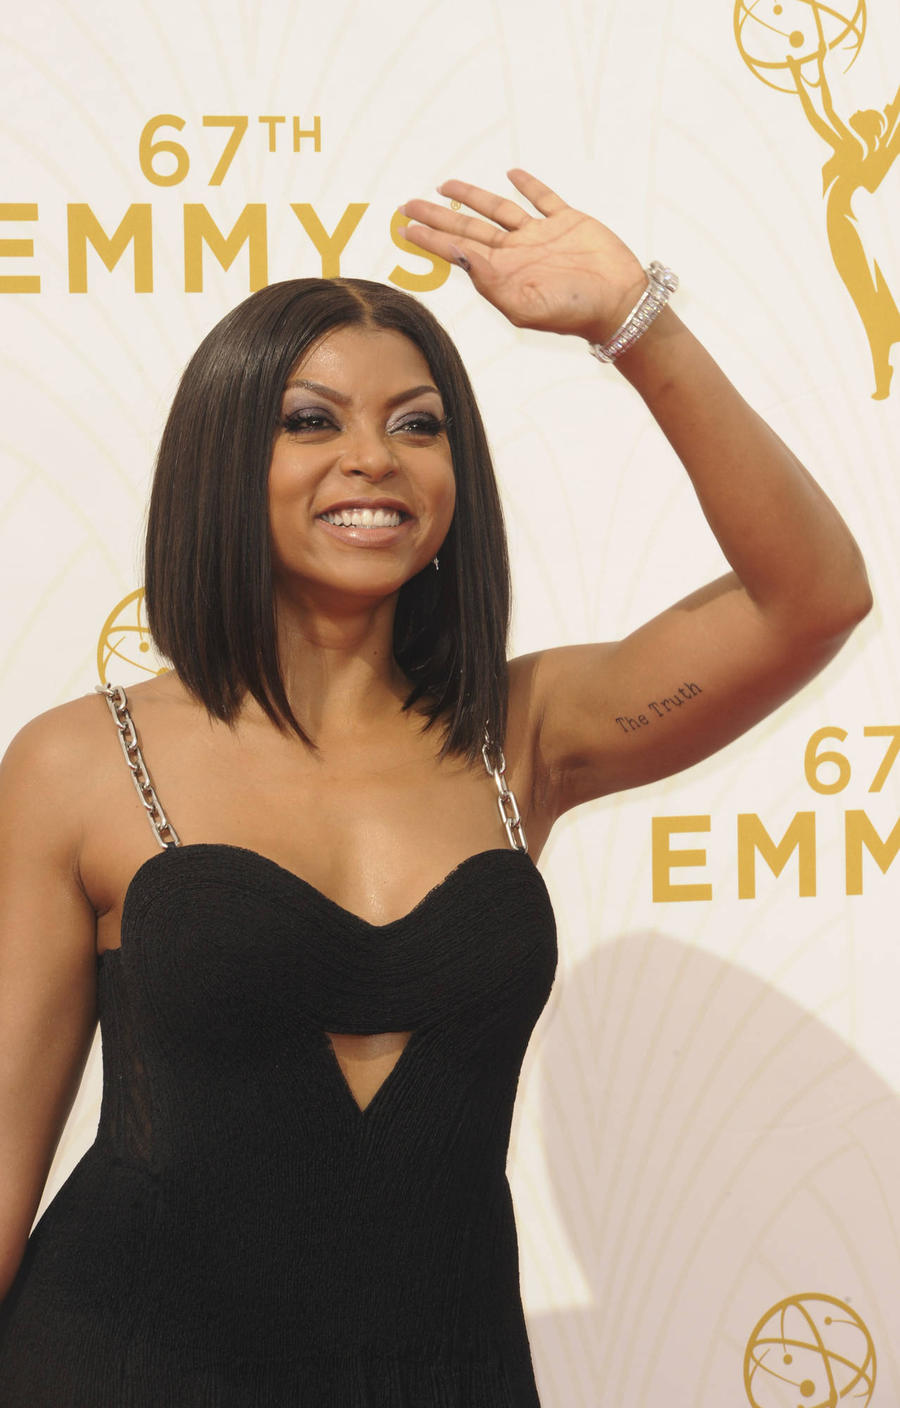 Taraji P. Henson And Natalie Dormer To Be Feted At 2016 Crystal + Lucy Awards